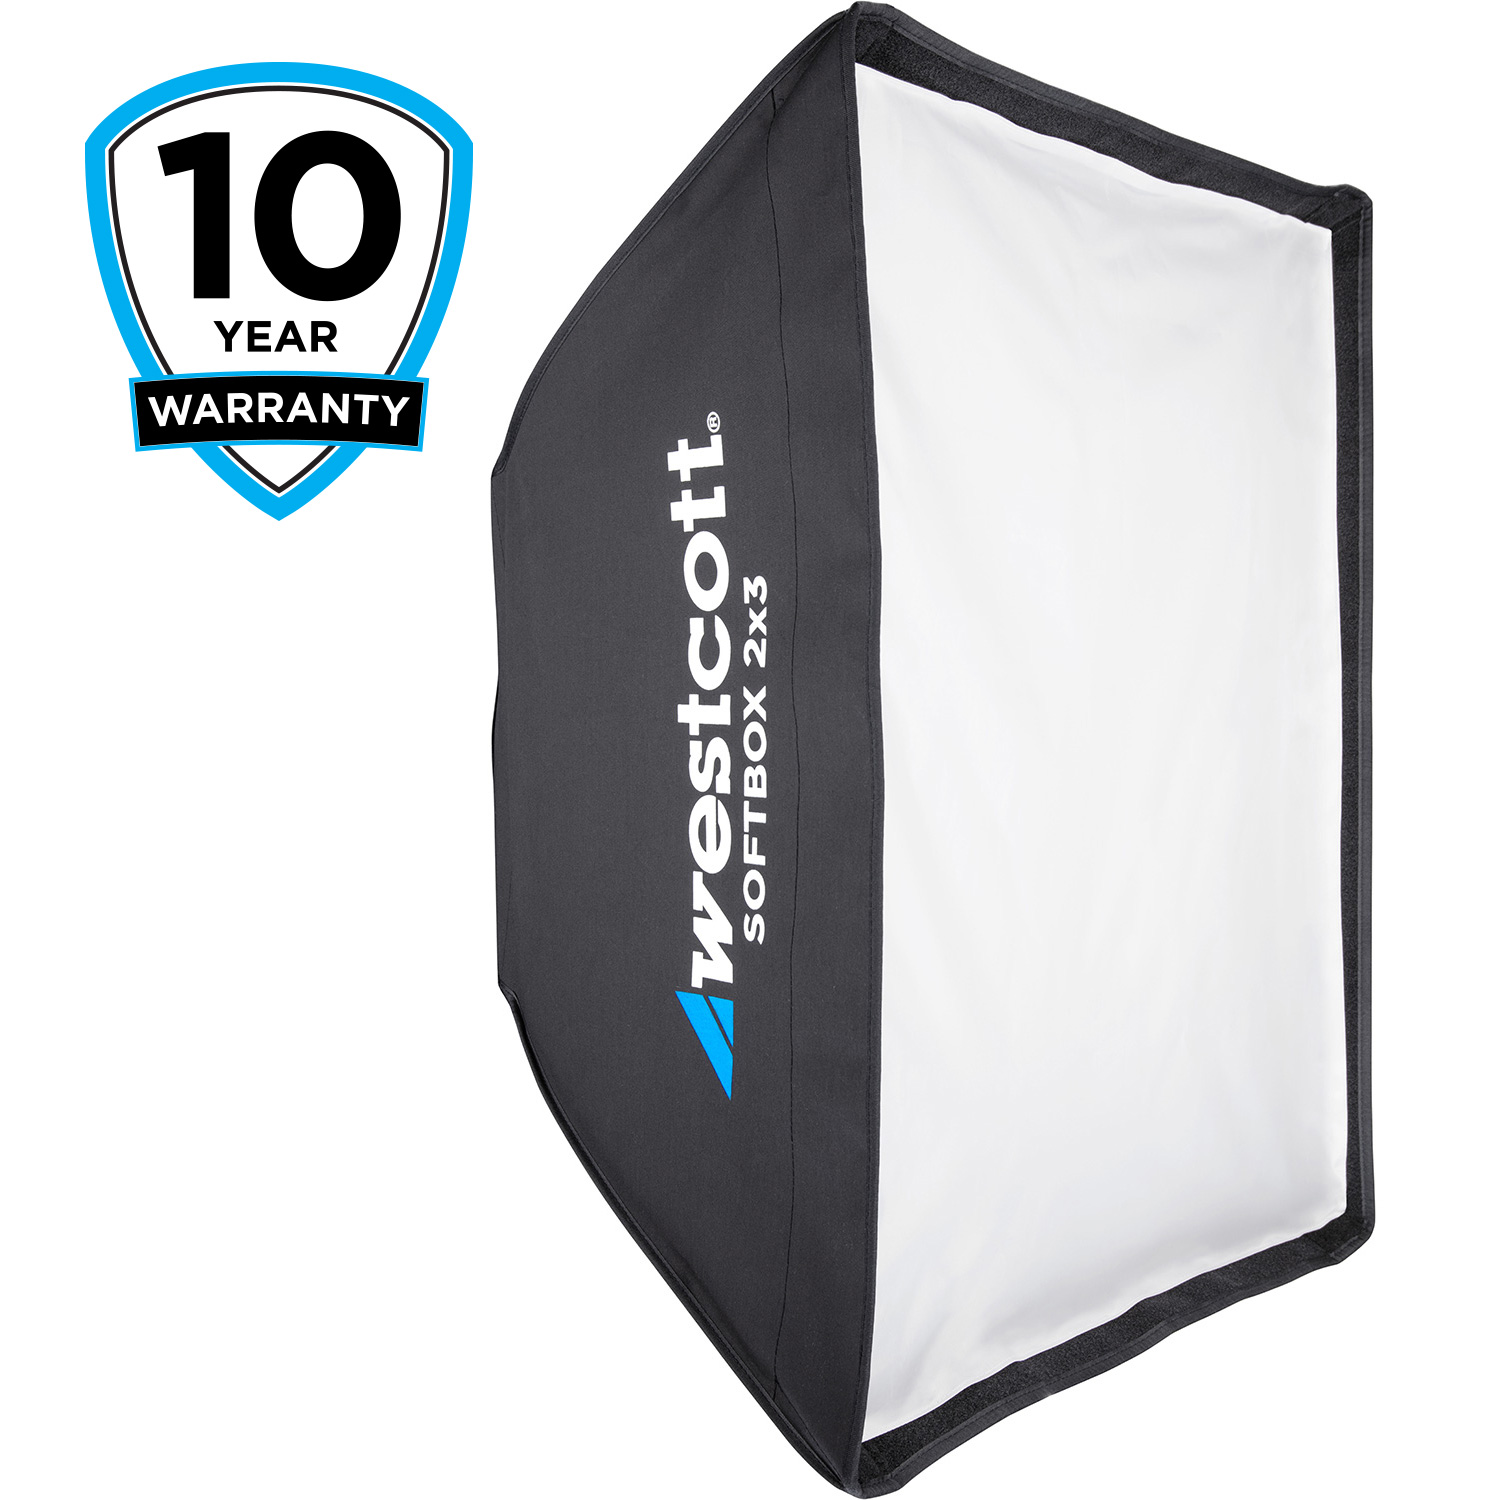 Softbox 2x3 (Silver Interior)